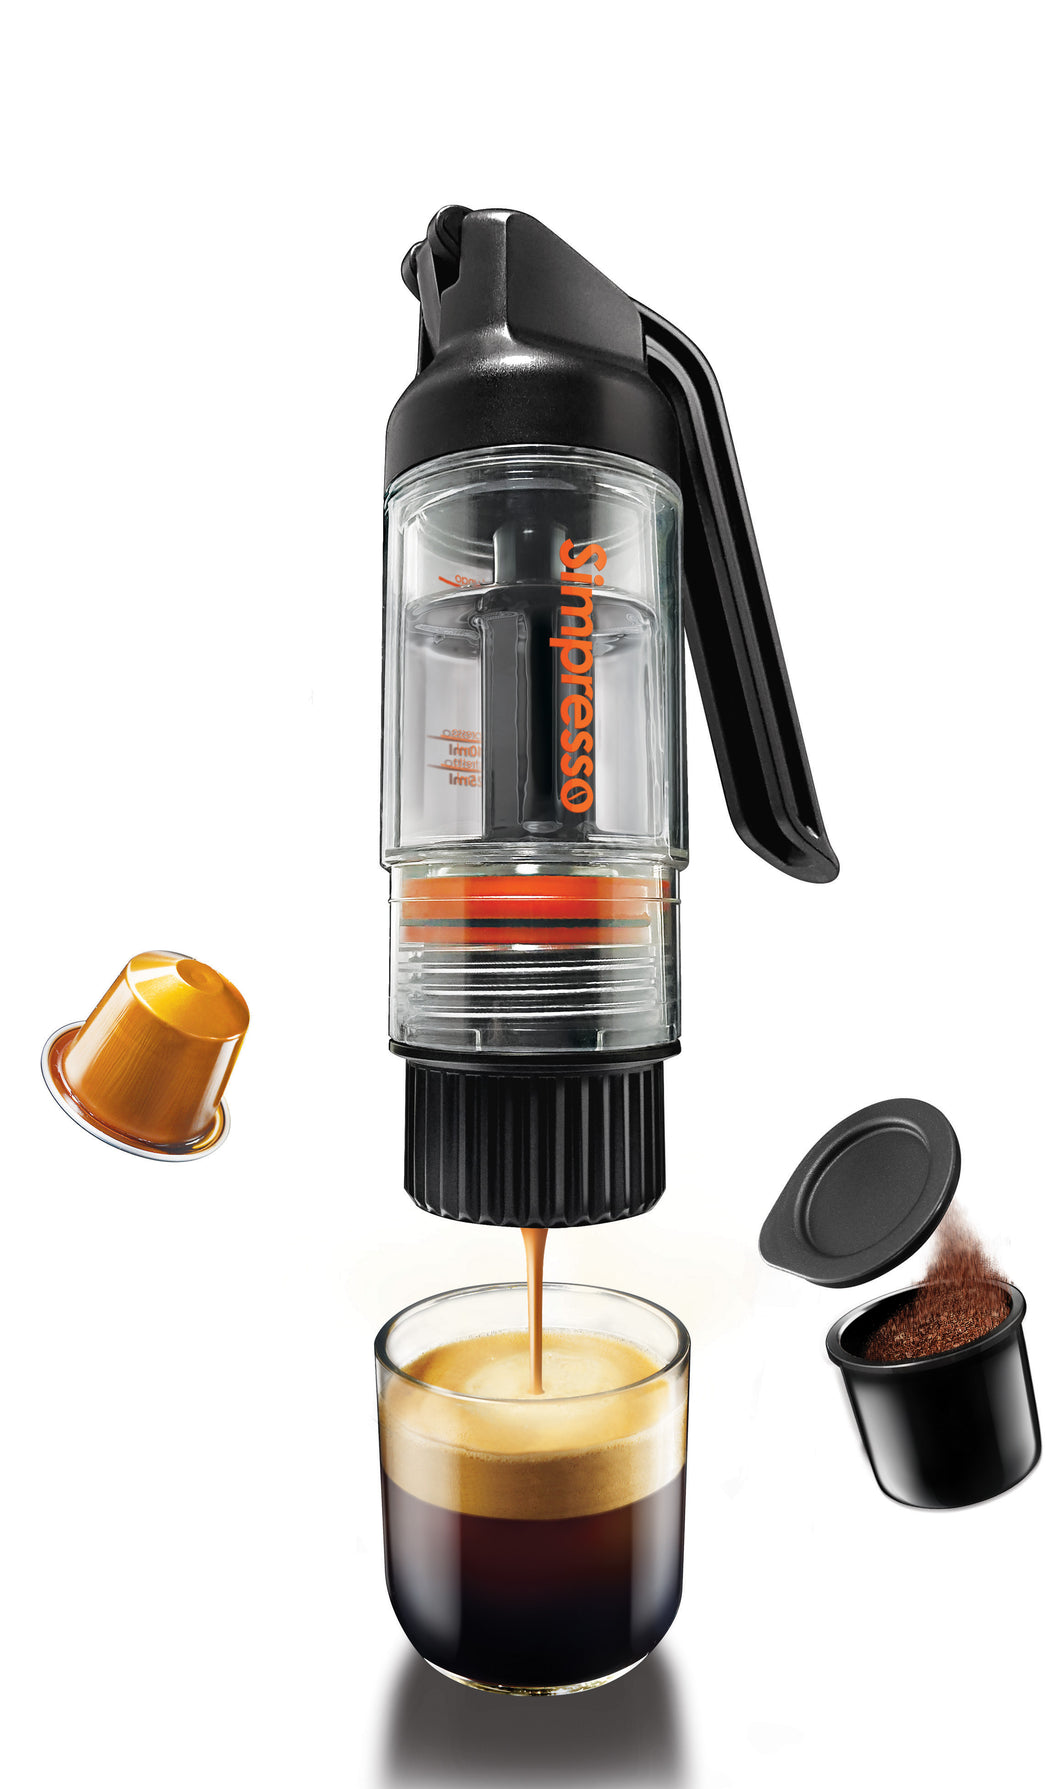 SIMPOSH SIMPRESSO PORTABLE ESPRESSO MAKER (PREMIUM TRAVEL PACKAGE) - ALL ACCESSORIES INCLUDED